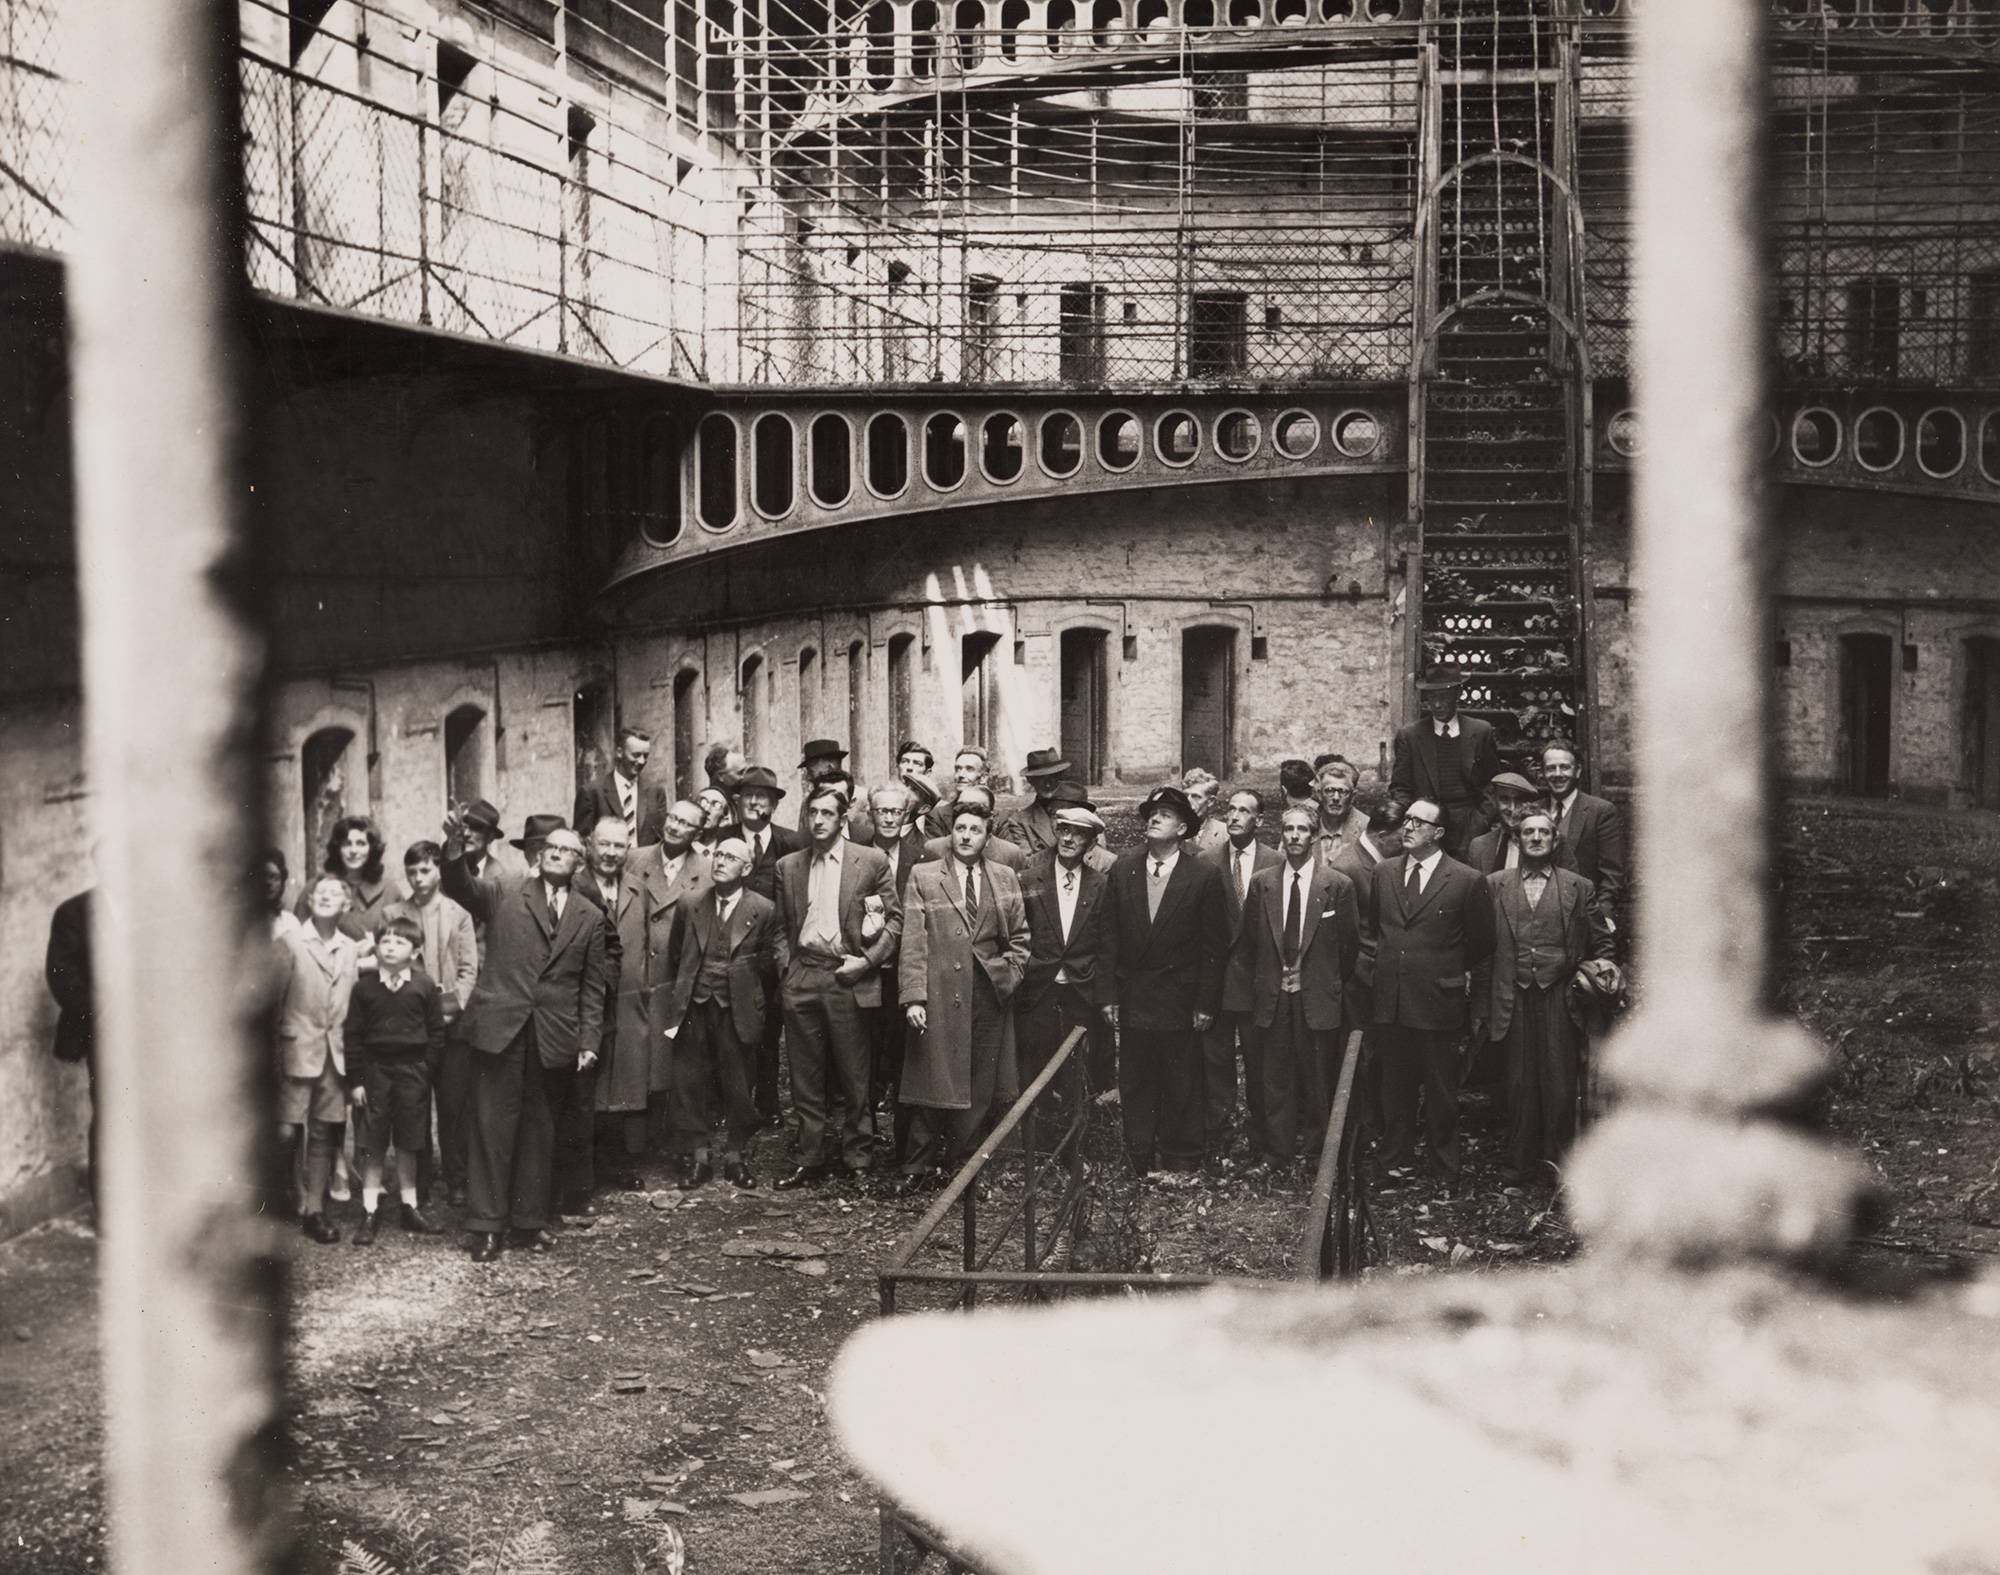 James Brennan, Secretary of the Kilmainham Jail Restoration Society, guides a group of visitors through the East Wing of the Jail, May 1960. OPW.